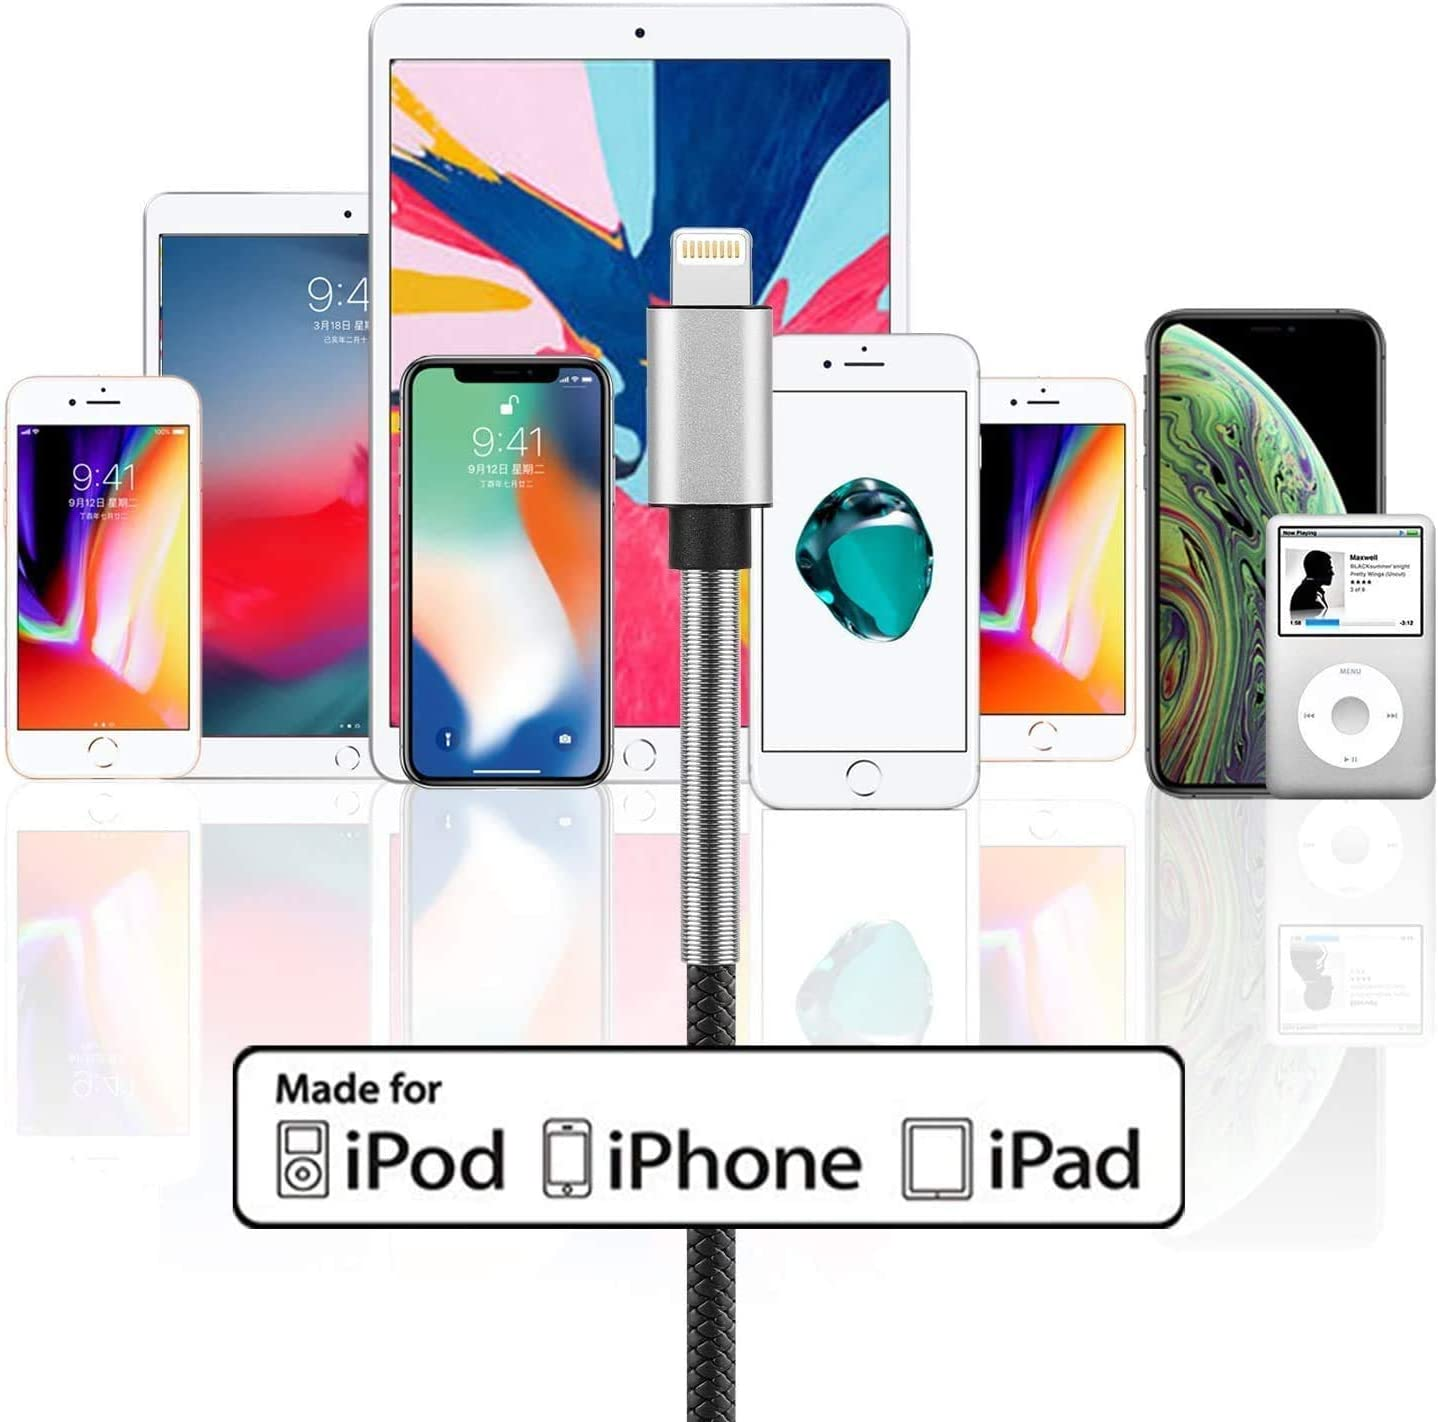 6Ft MFi Certified 2Pack 6 Foot iPhone Charger Cable Cabepow Fast Charging Cord for Apple iPhone 11//11 Pro //11 Pro Max//XS//XS Max//XR//X//8//8 Plus//7//7 Plus//6//6 Plus//5//SE Lightning Cable